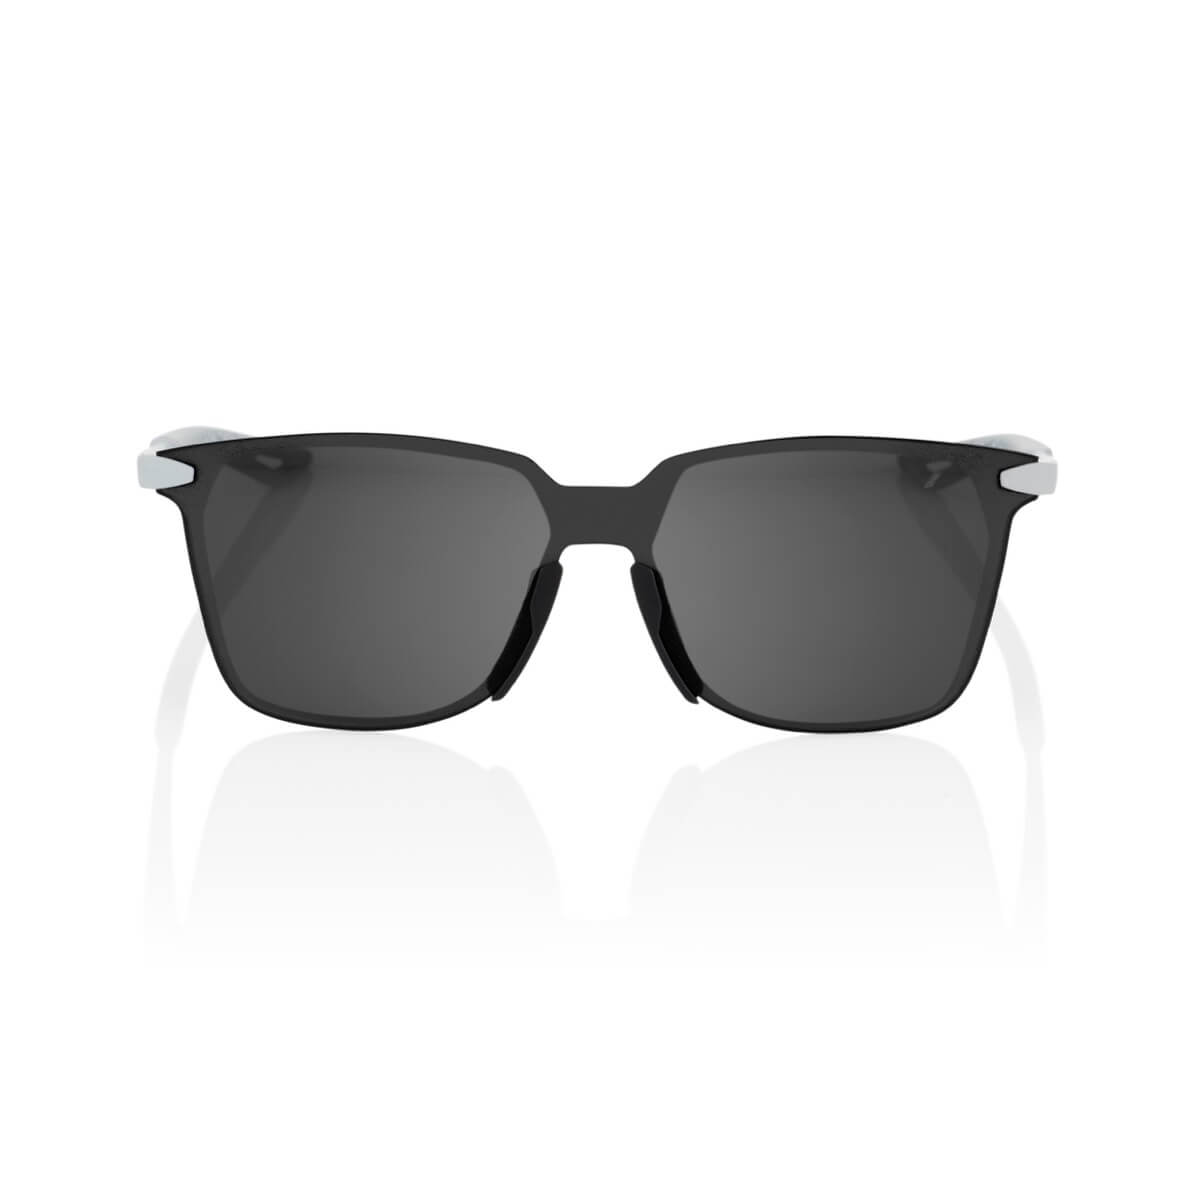 LEGERE Square – Soft Tact Stone Grey – Black Mirror Lens